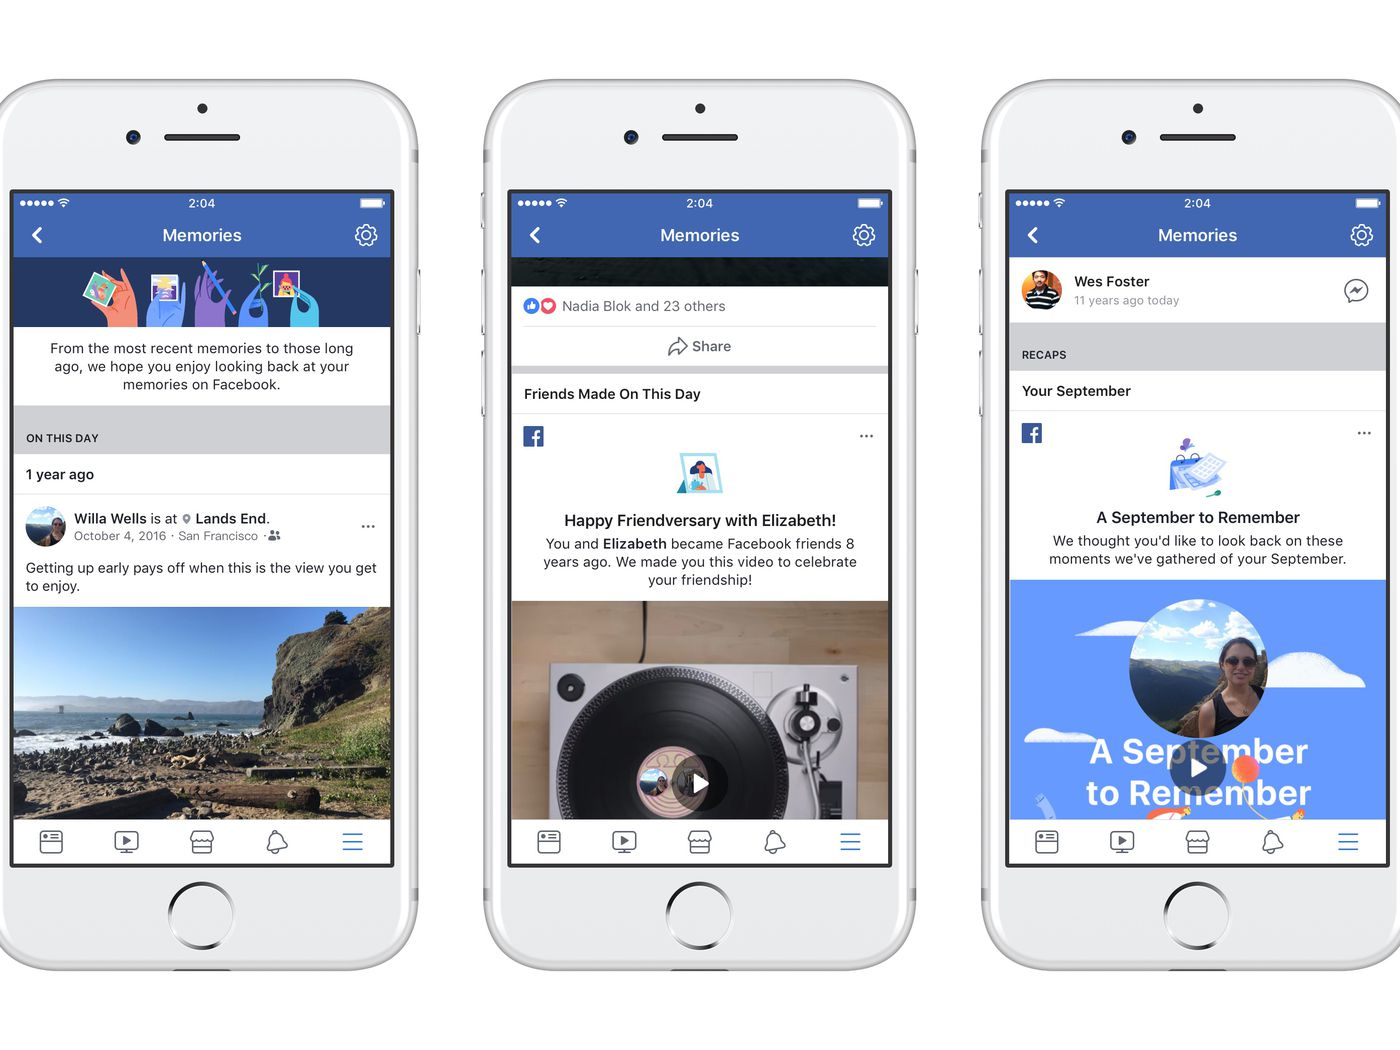 Facebook is launching a new memories page to remind you of the days